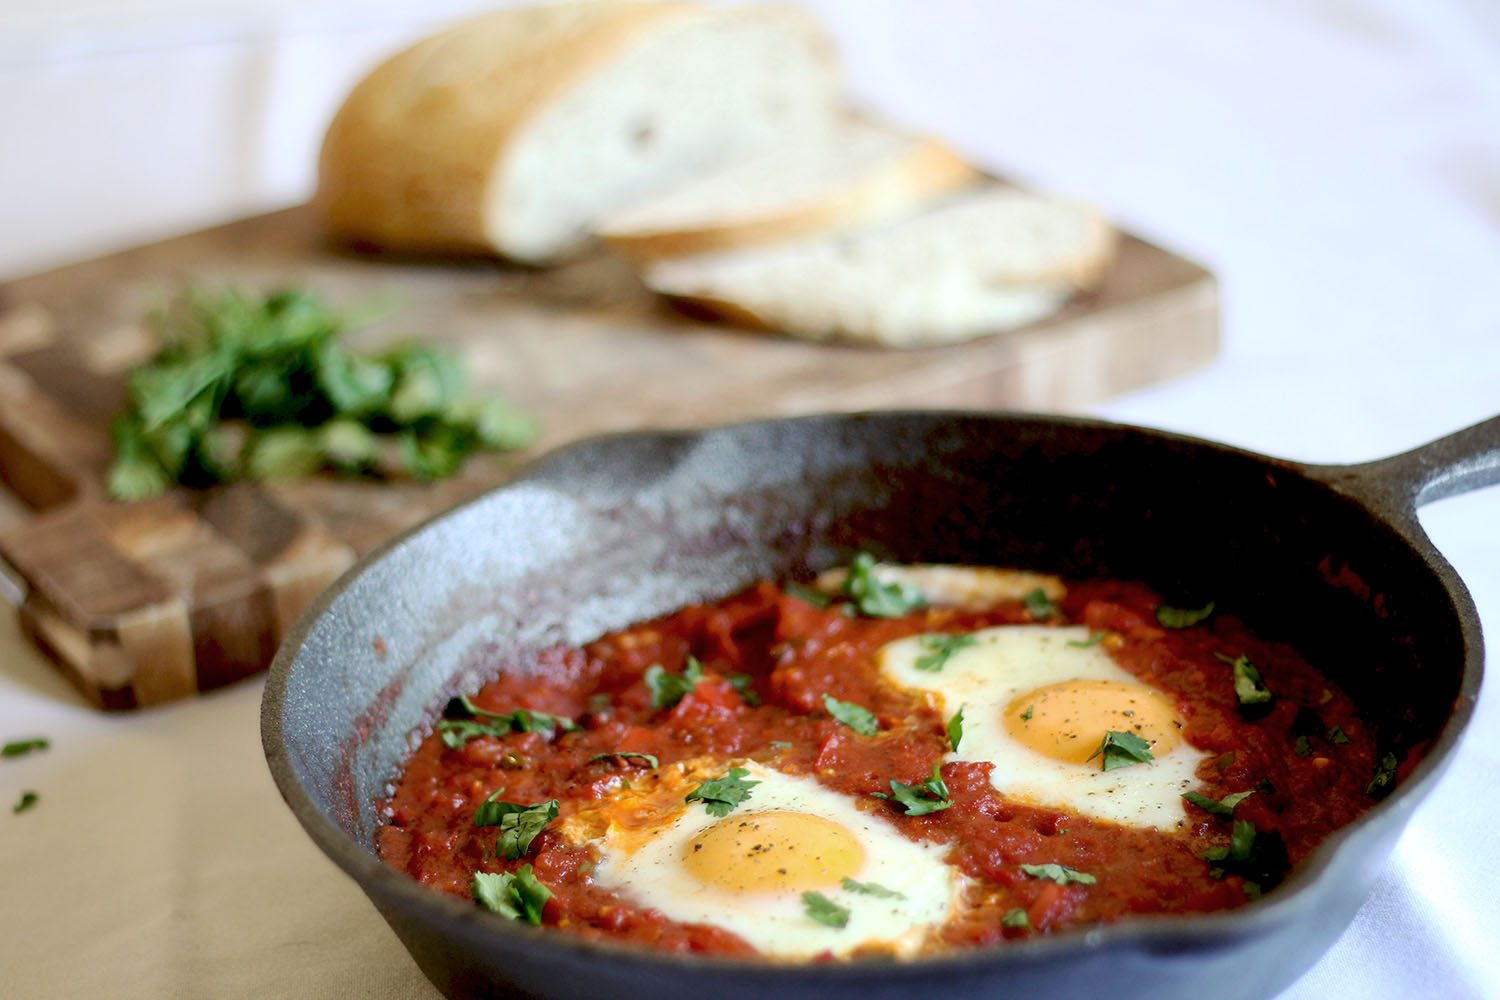 eggs-in-hell-recipe-shakshuka-for-brunch